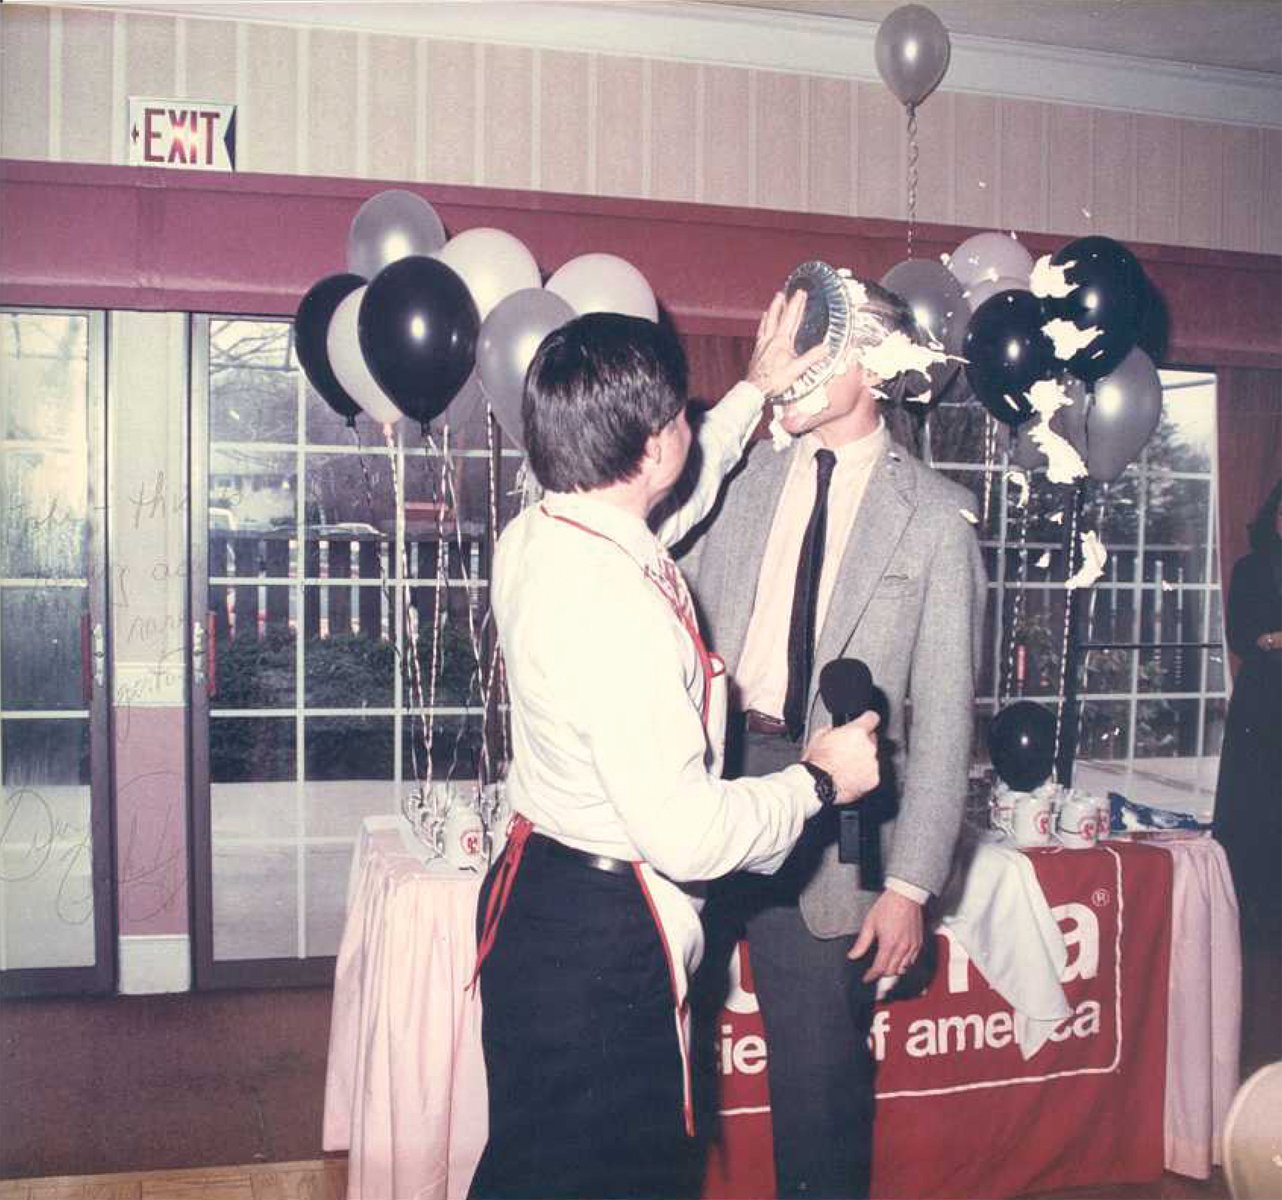 ALL FOR A GOOD CAUSE:  As mayor of Warwick, Francis X. Flaherty often assumed the role of master of ceremonies at nonprofit fundraising events – and as seen here, even threw a pie or two. The recipient is John Howell, who was covering (or, should we say got covered) for the event.